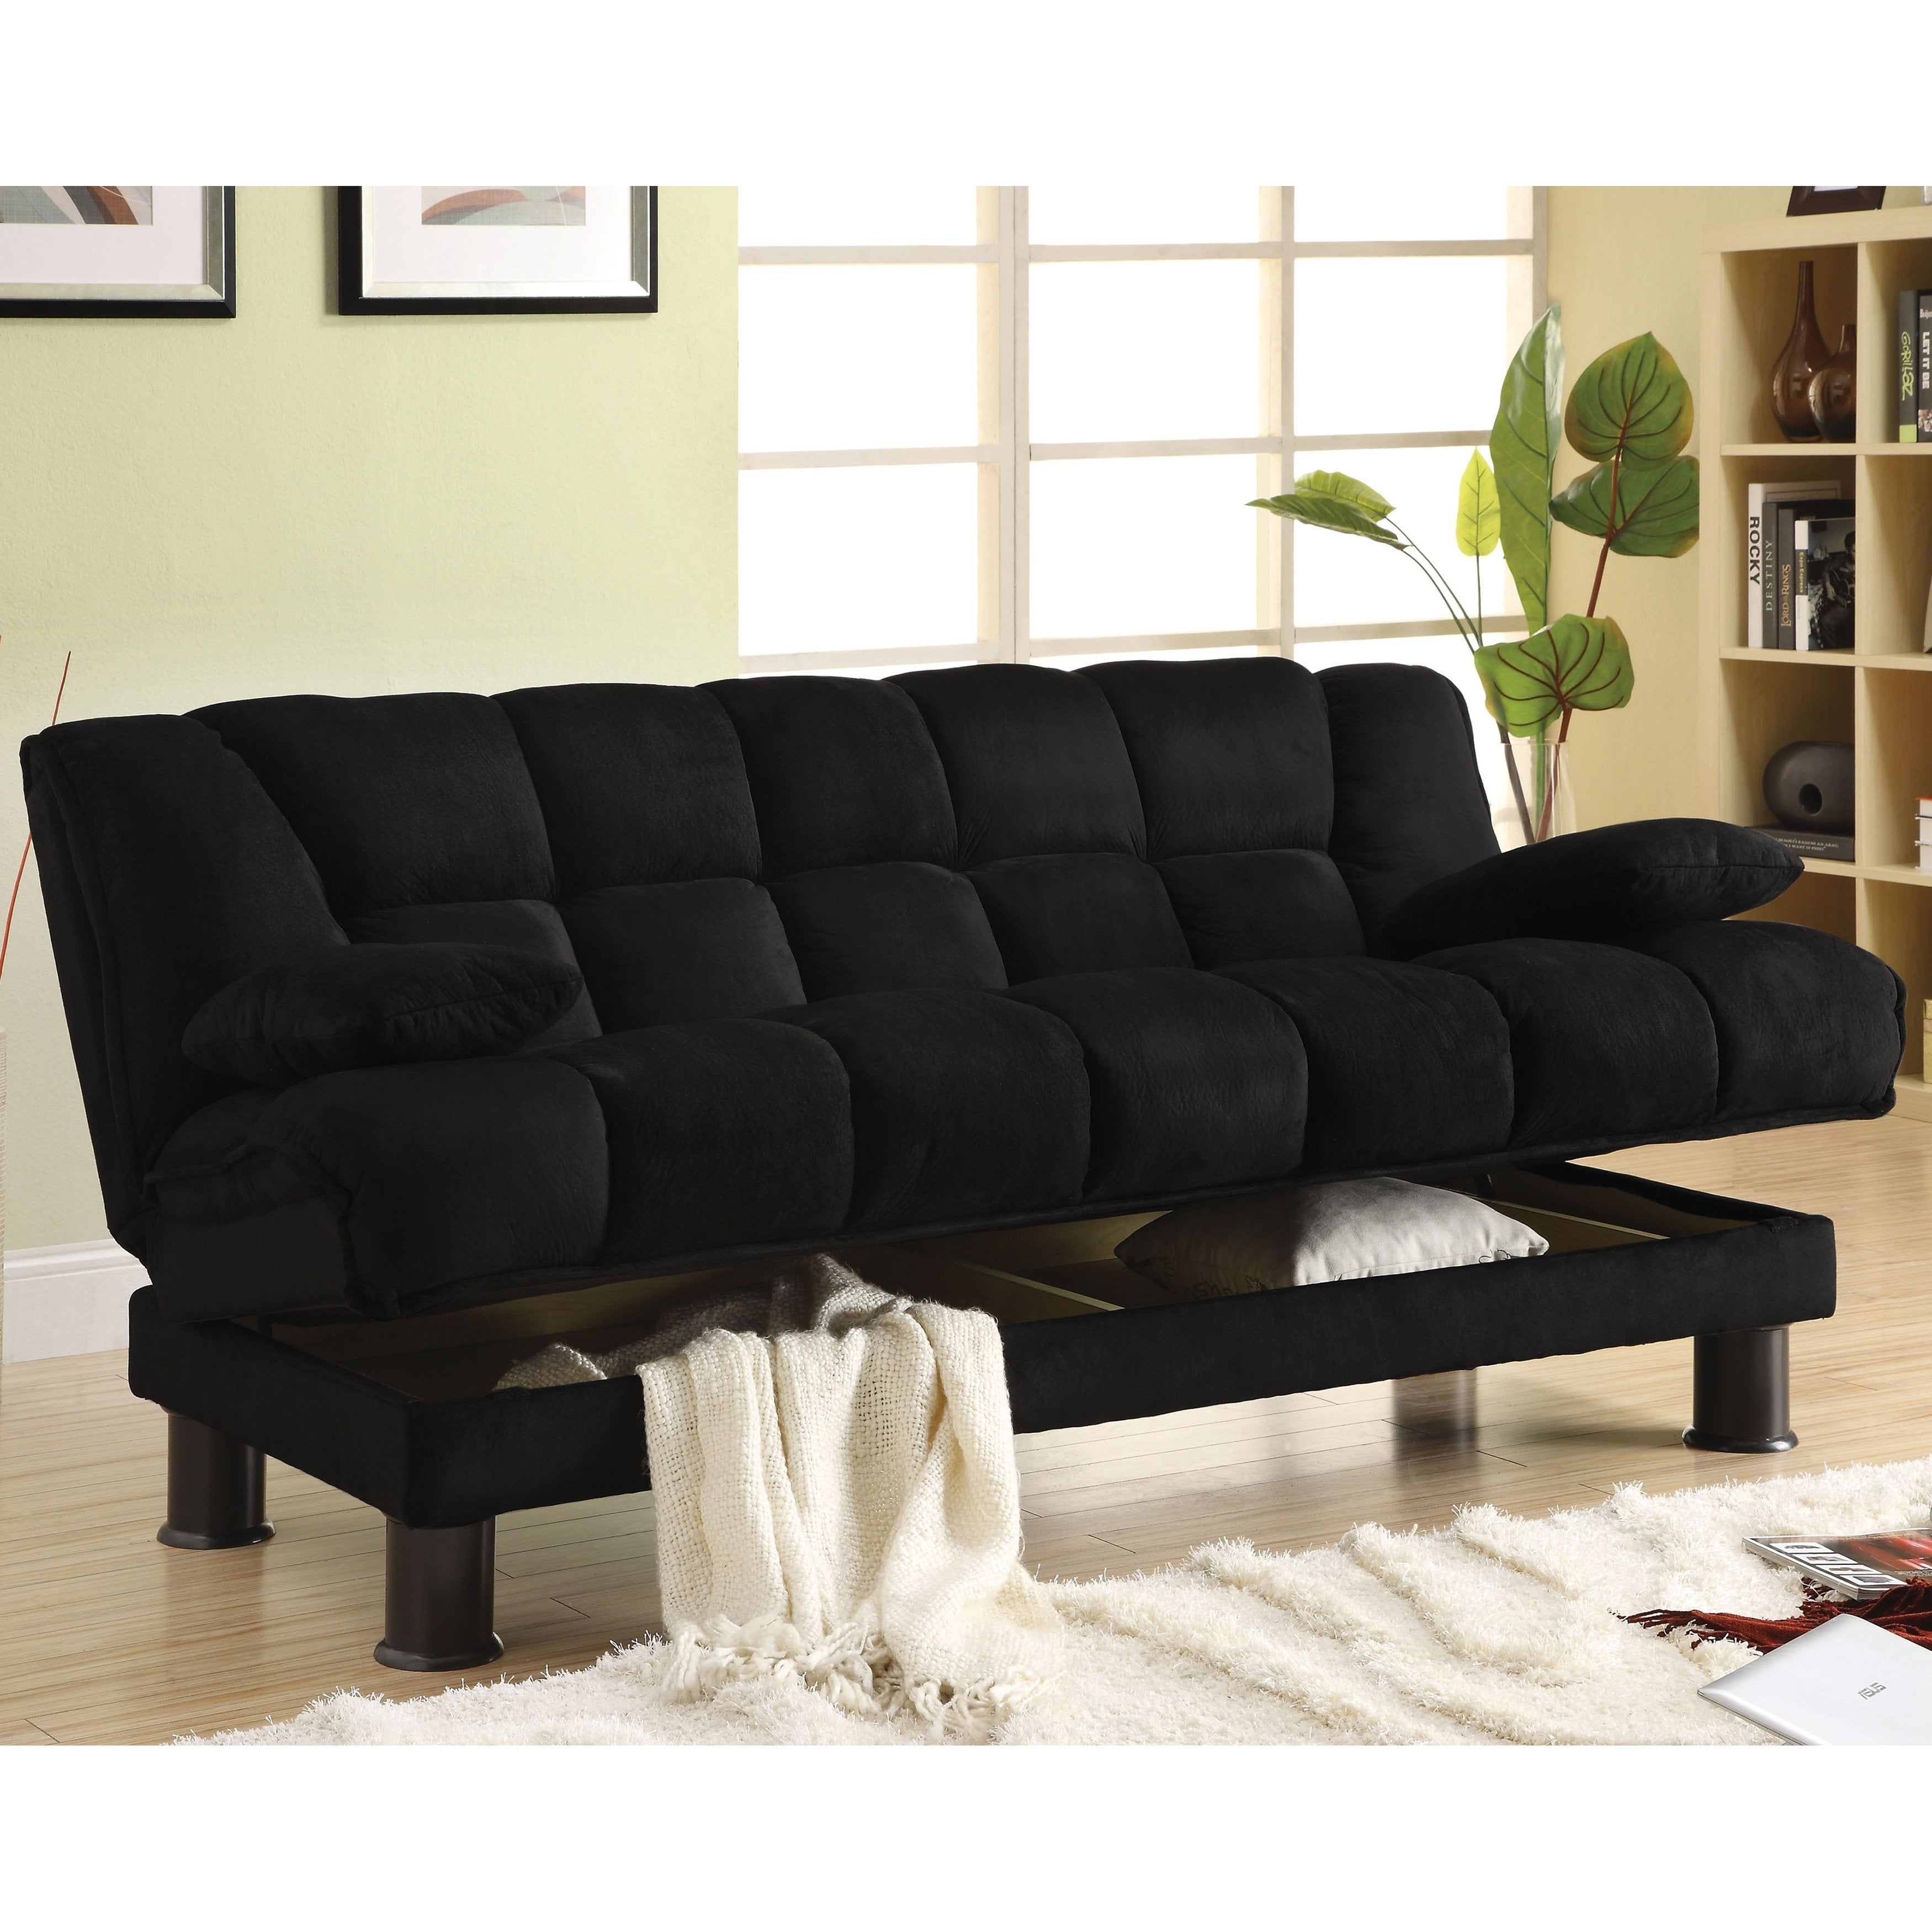 Elephant Skin Contemporary Black Futon Sofabed With Storage By Foa